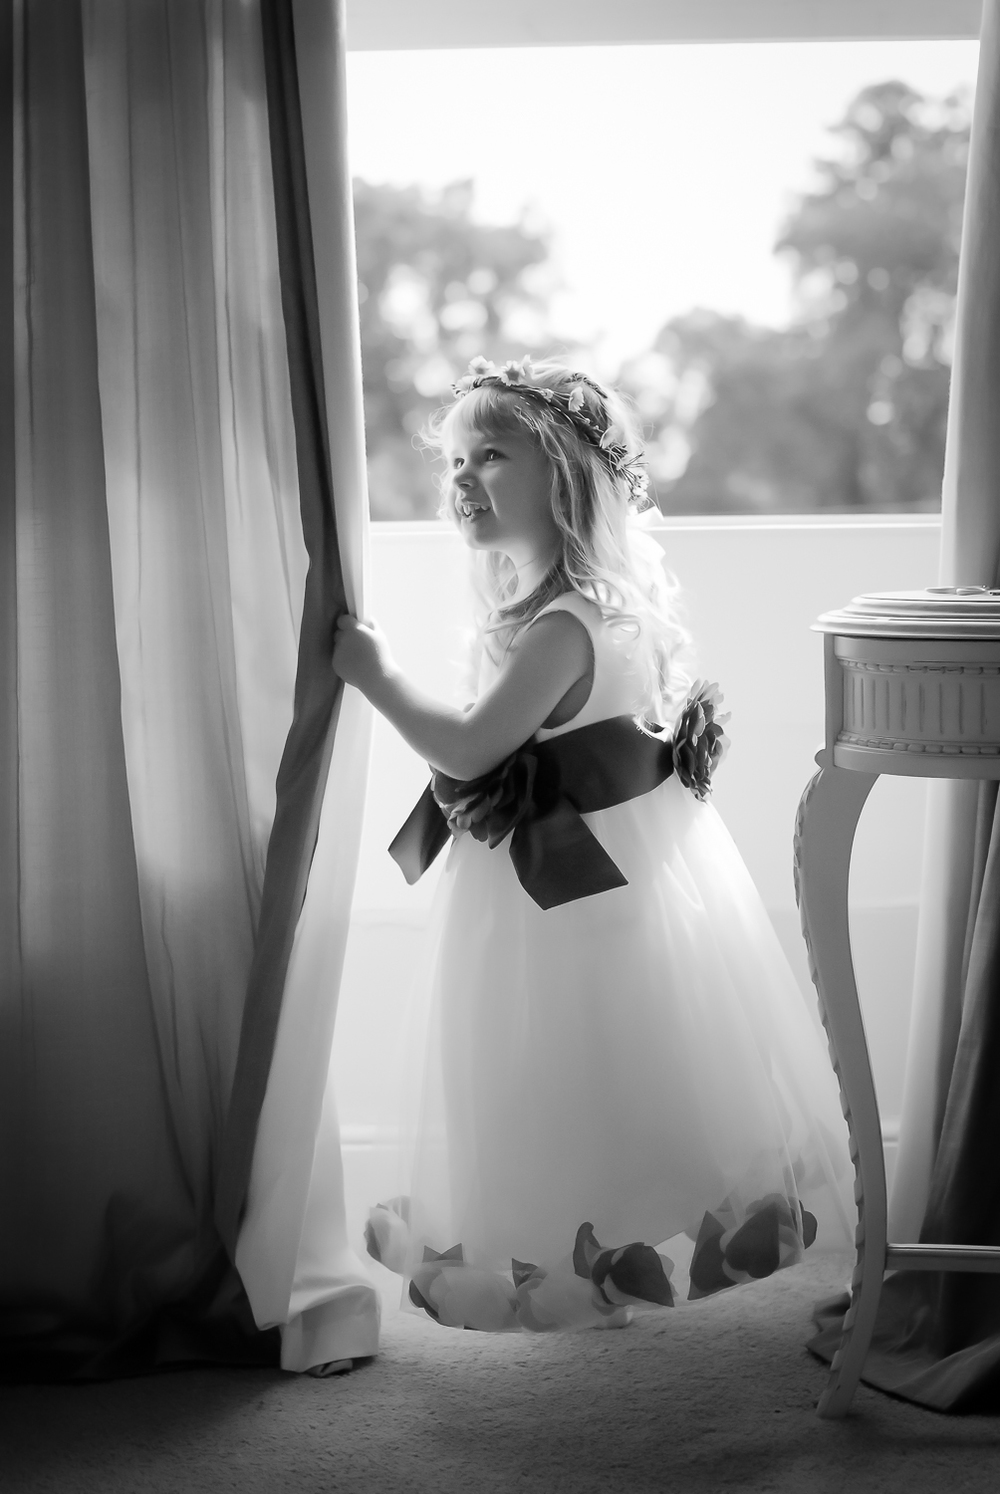 Black and white wedding photo of a child bridesmaid leaning on a curtain and smiling across